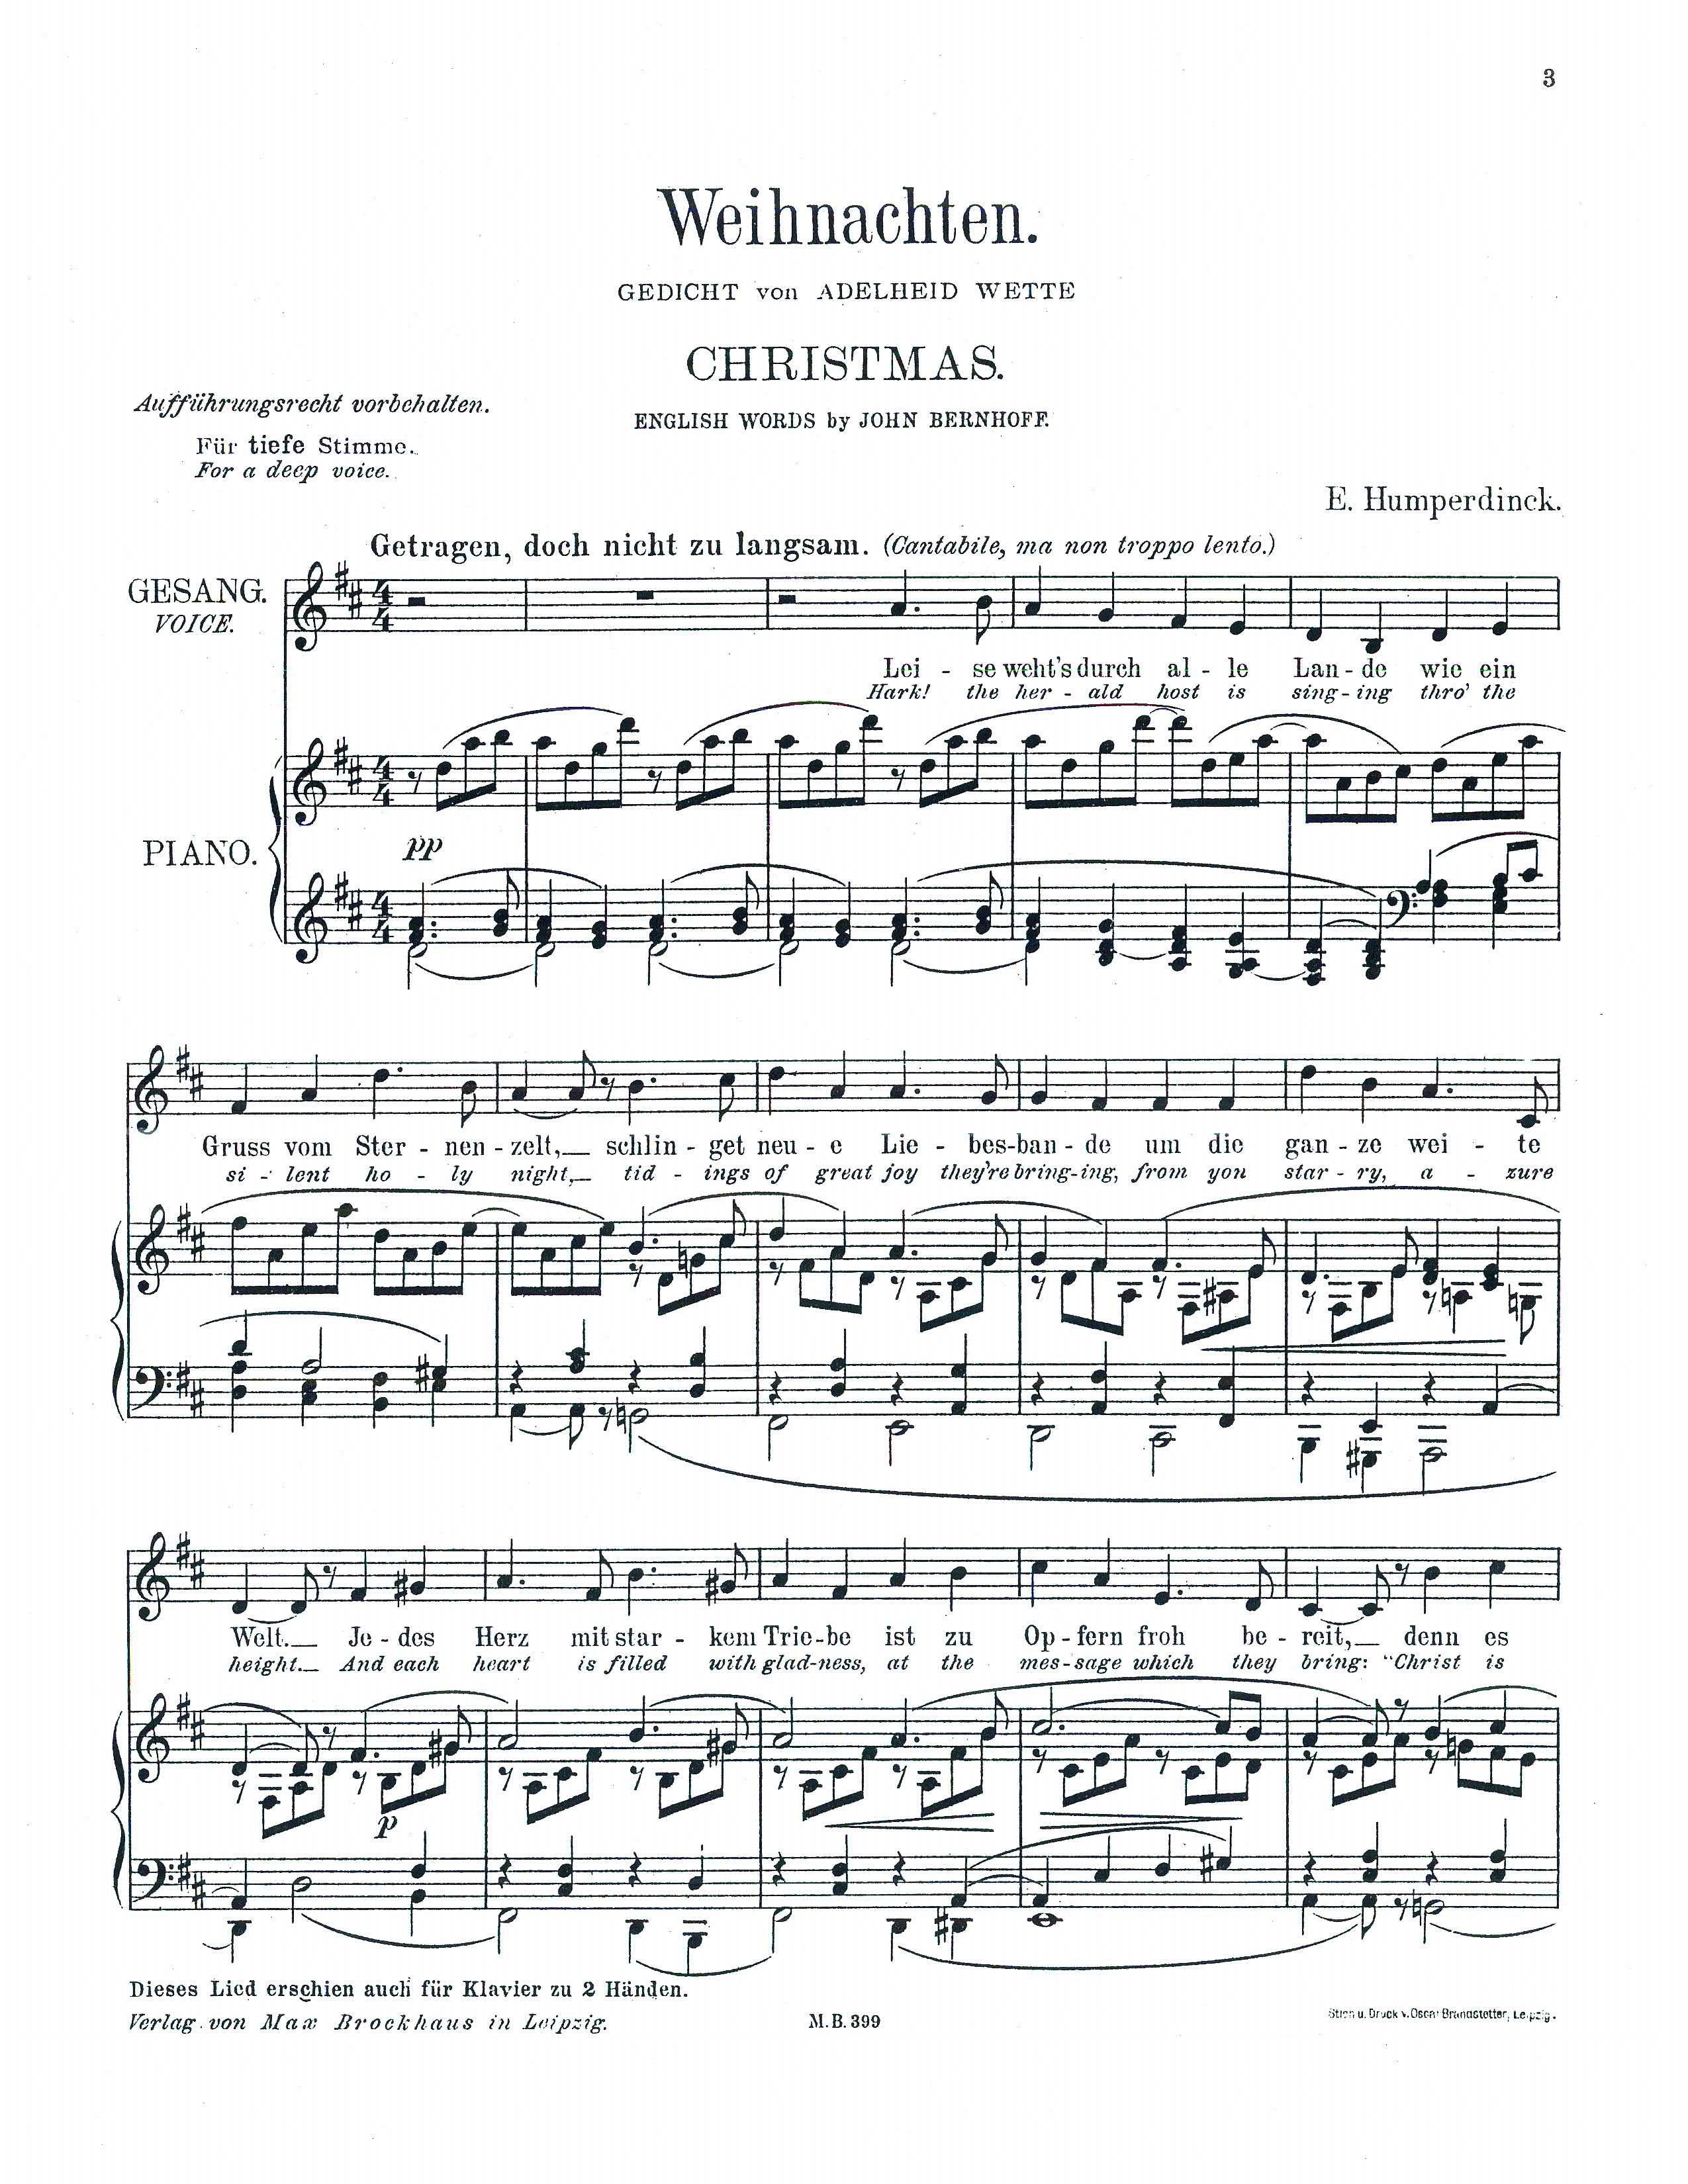 Weihnachtslieder Klavier Pdf.Classical Vocal Reprints Product Page Sheet Music Pdf Downloads